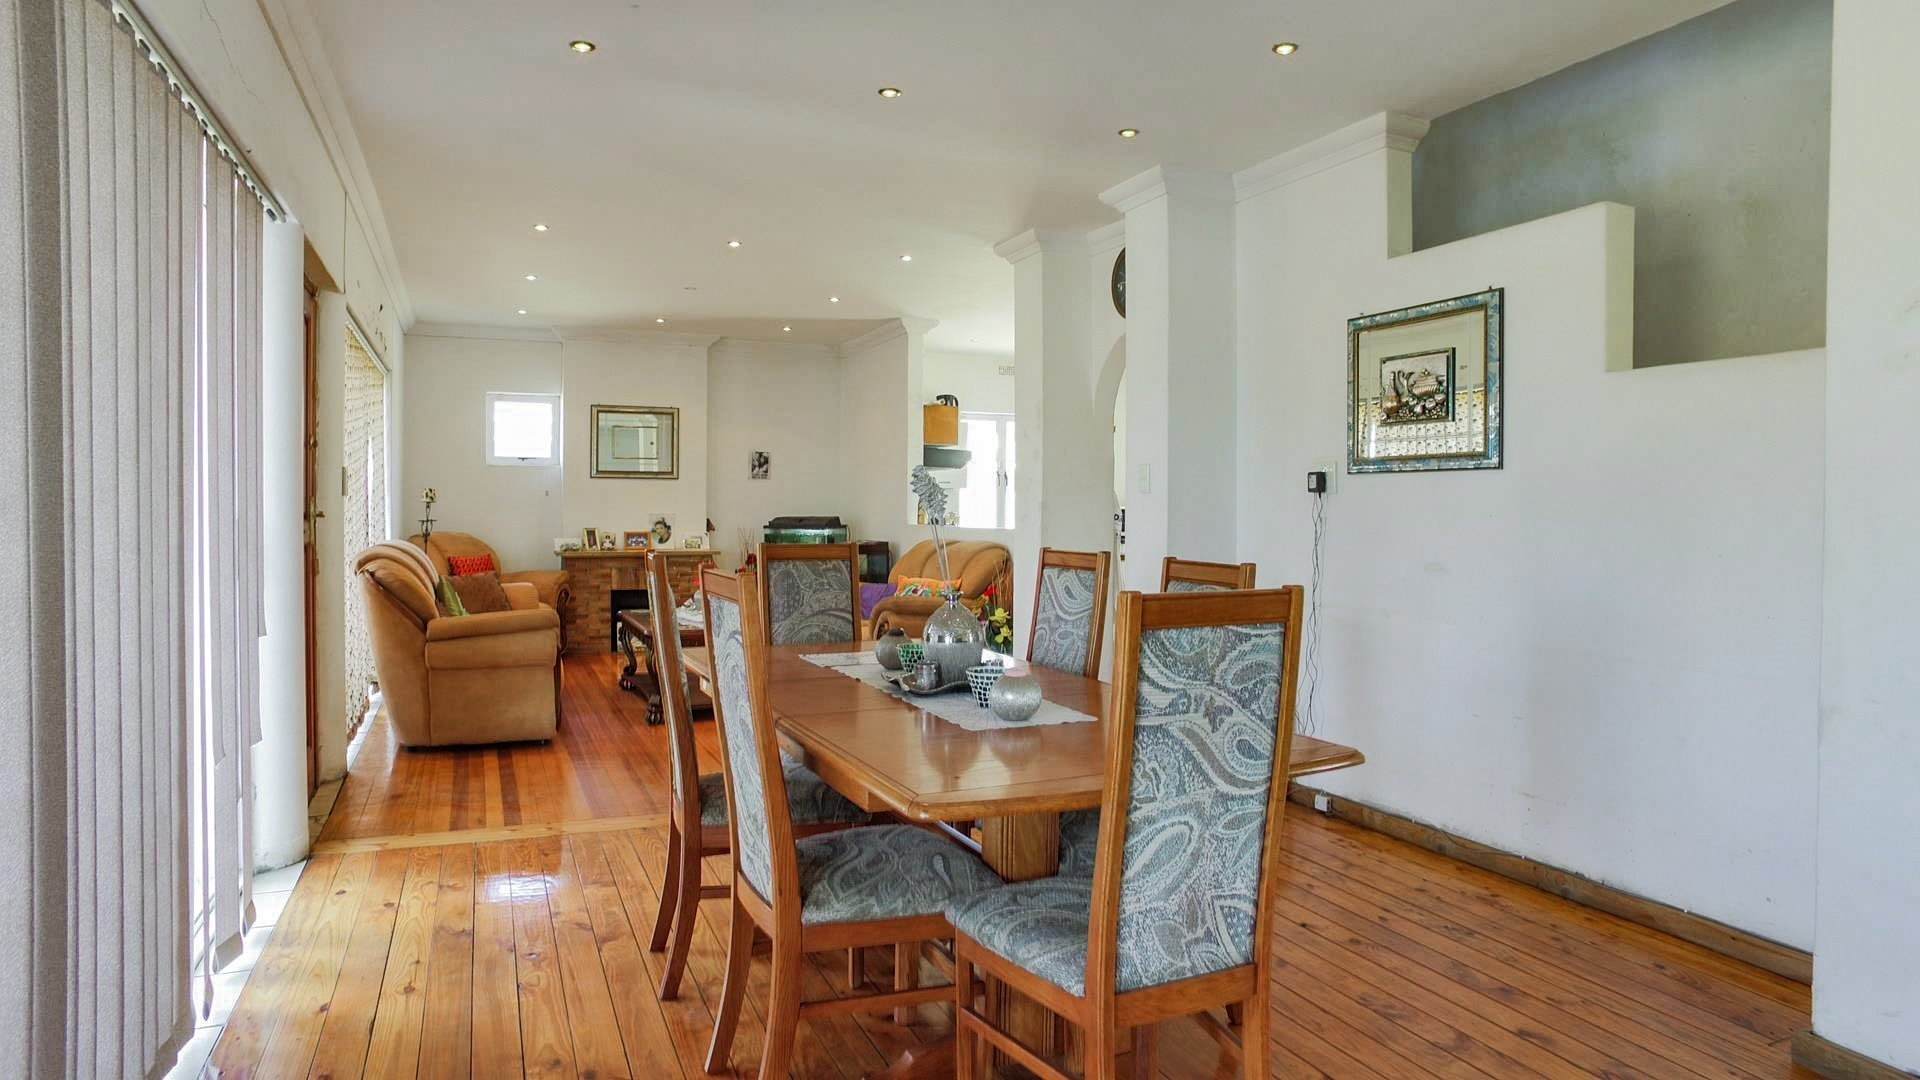 4 Bedroom House For Sale In Algoa Park